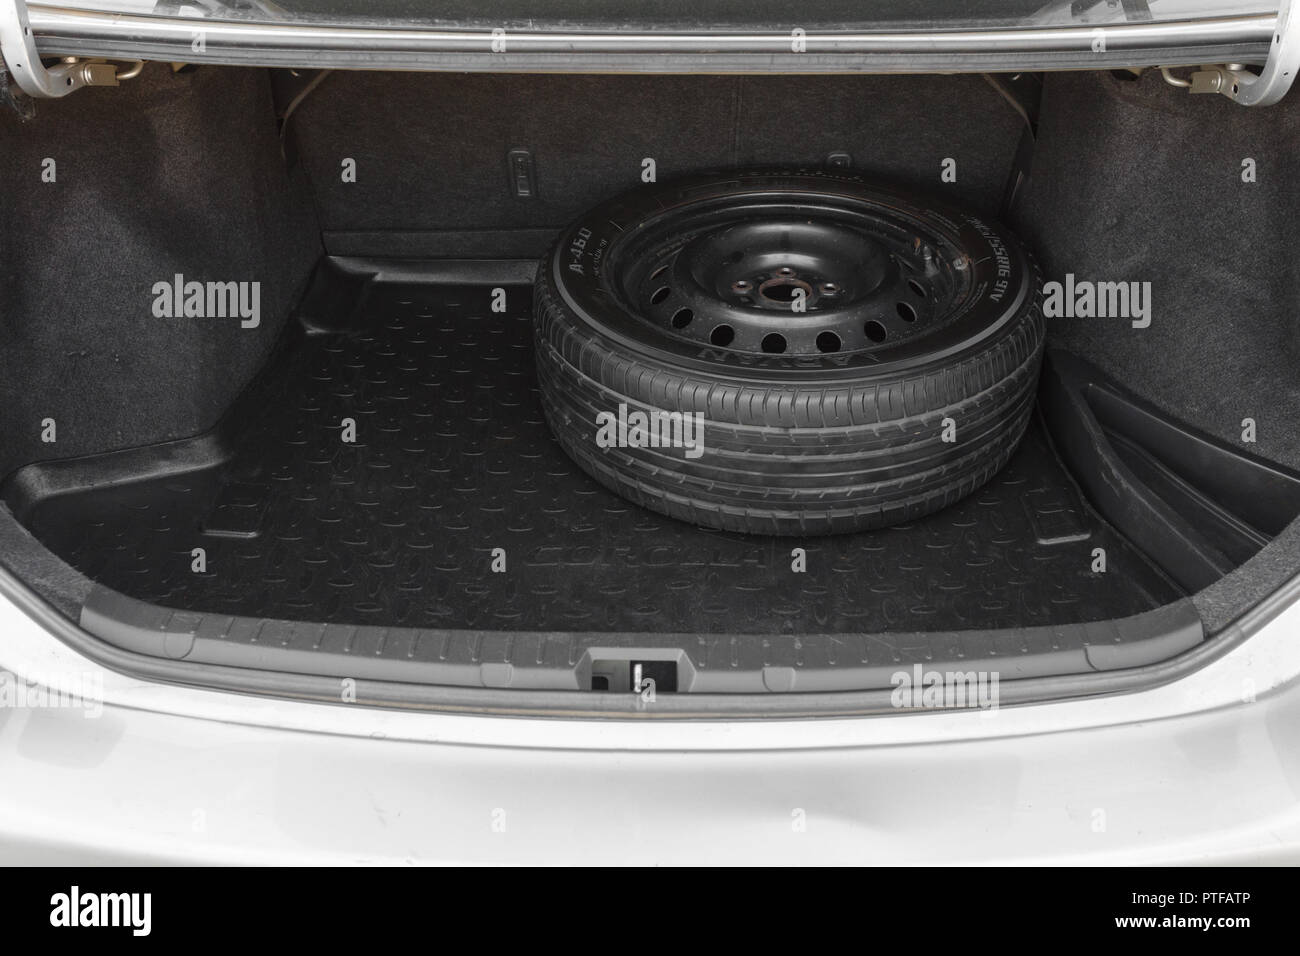 DNIPRO, UKRAINE - SEPTEMBER 01, 2018: TOYOTA COROLLA GREY COLOR, SPARE WHEEL IN THE TRUNK - Stock Image